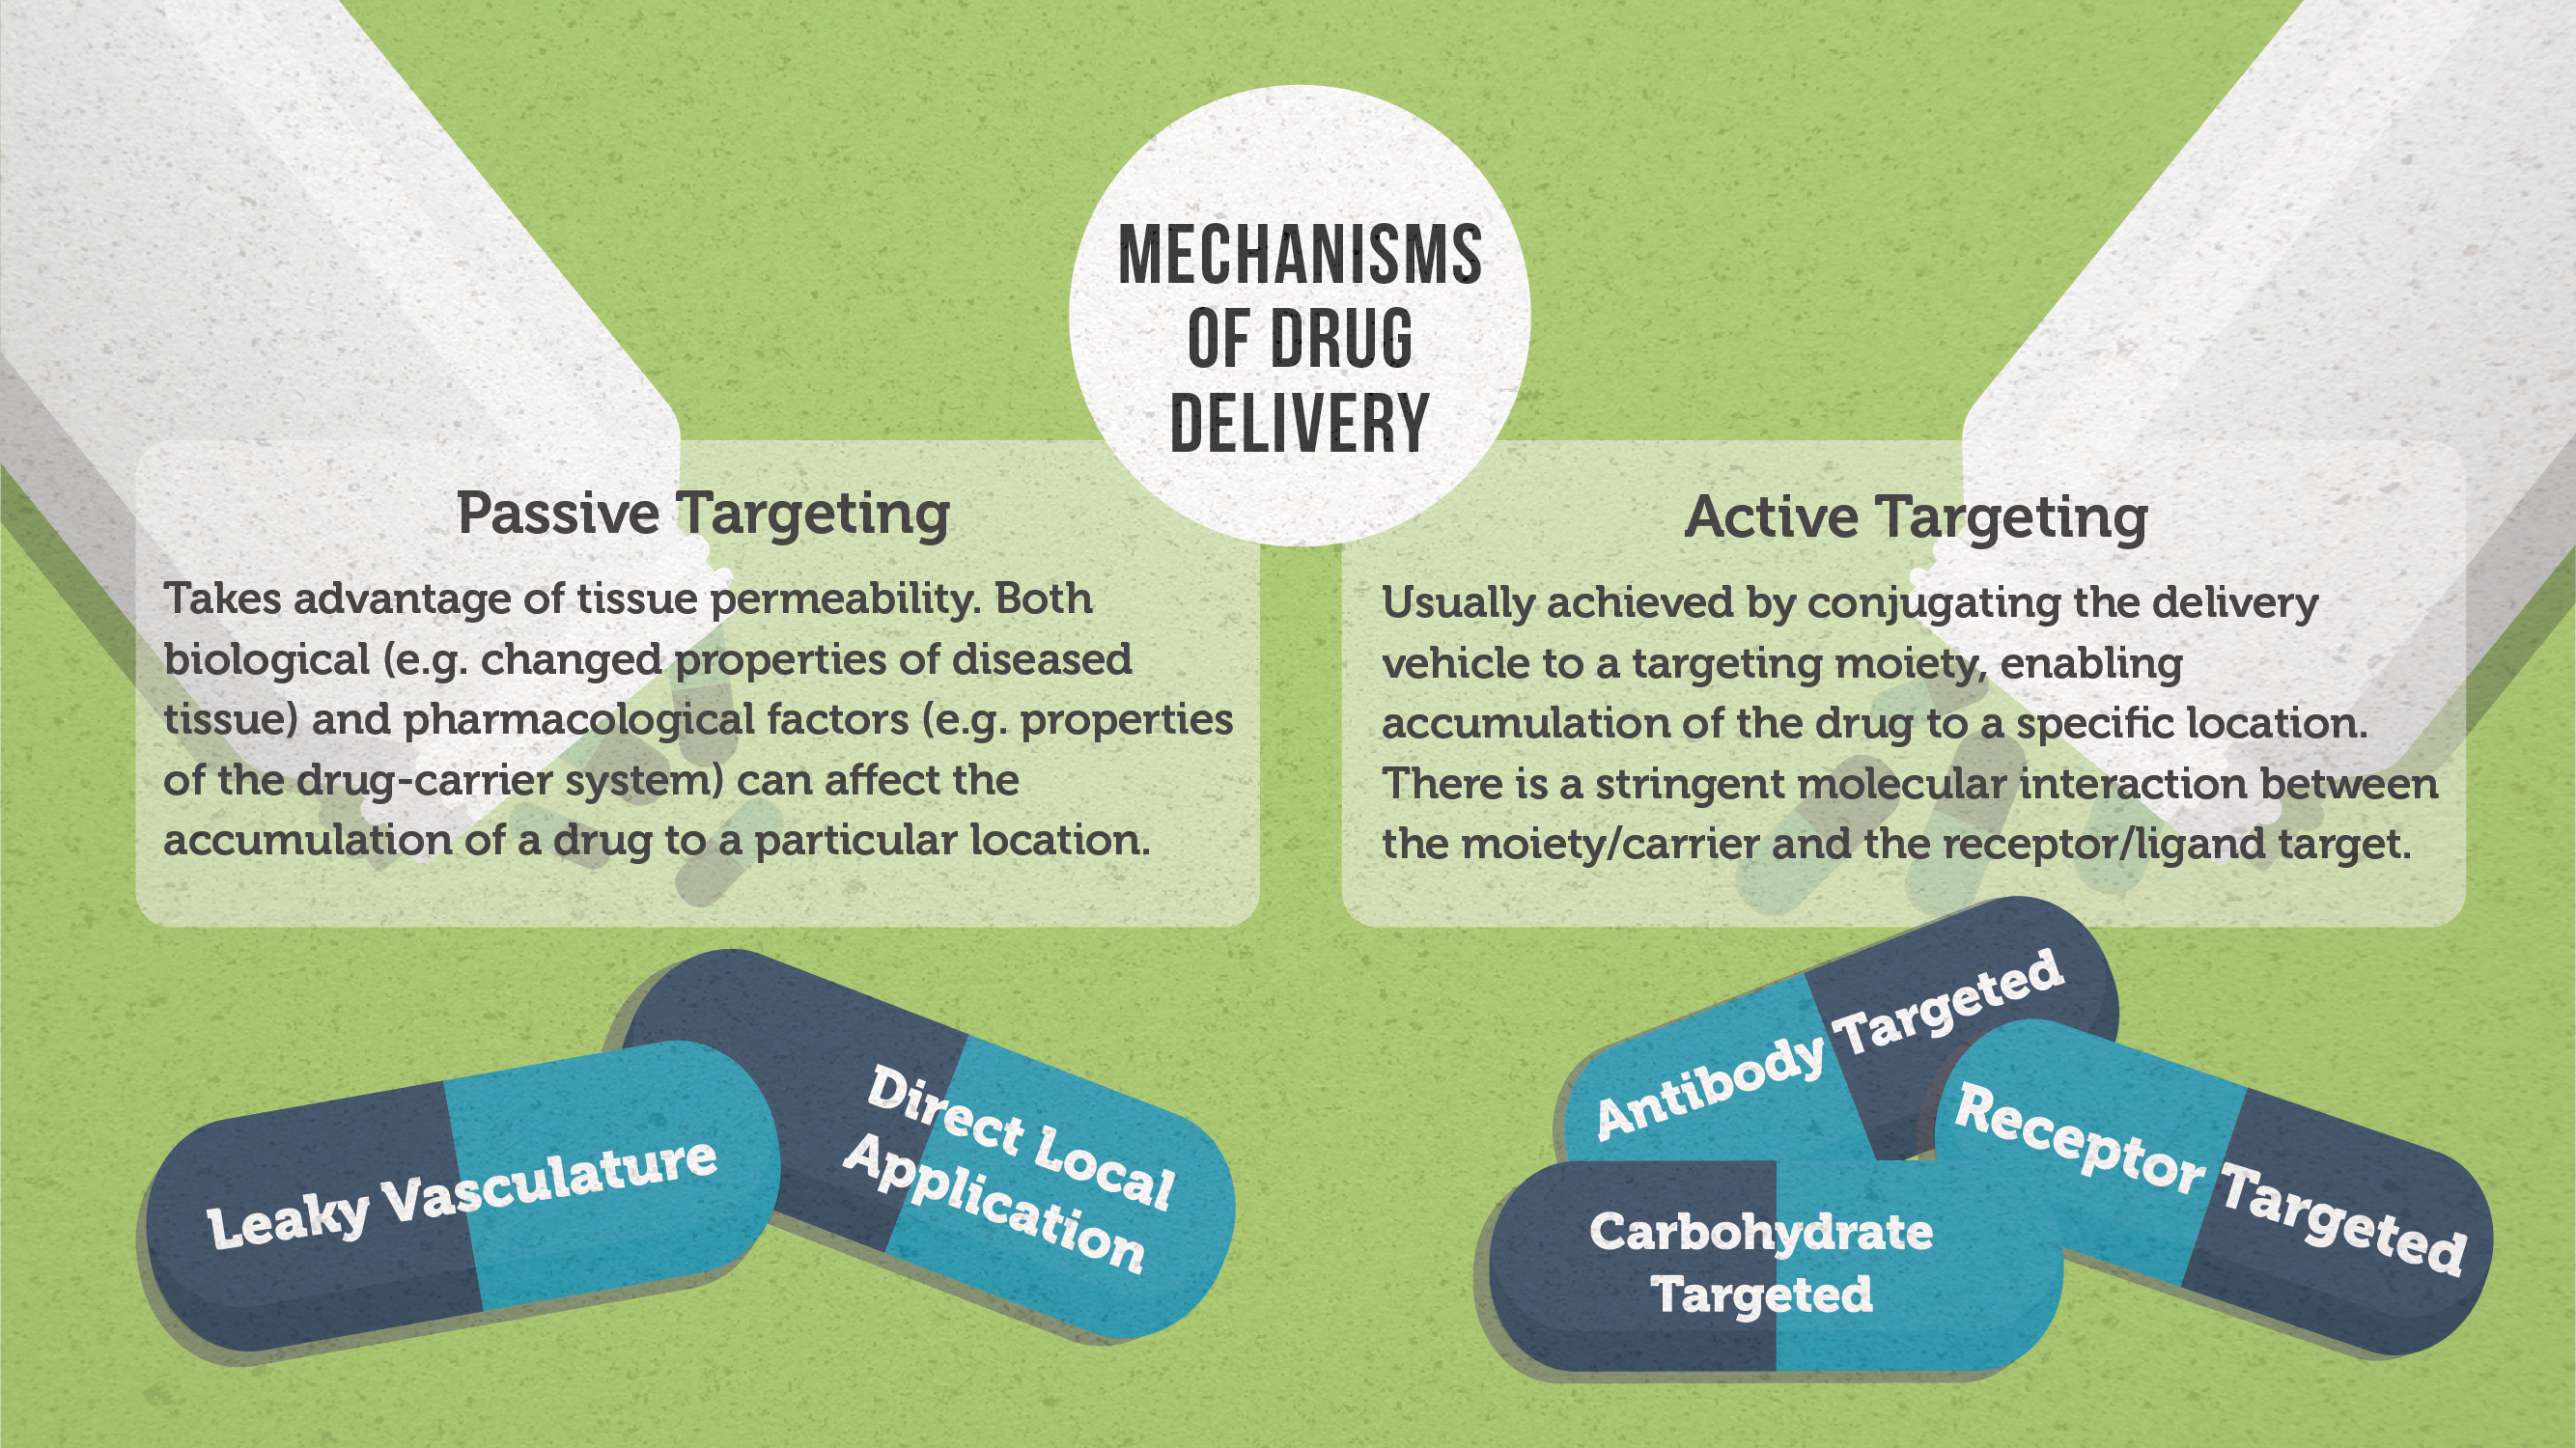 Passive vs active targeting